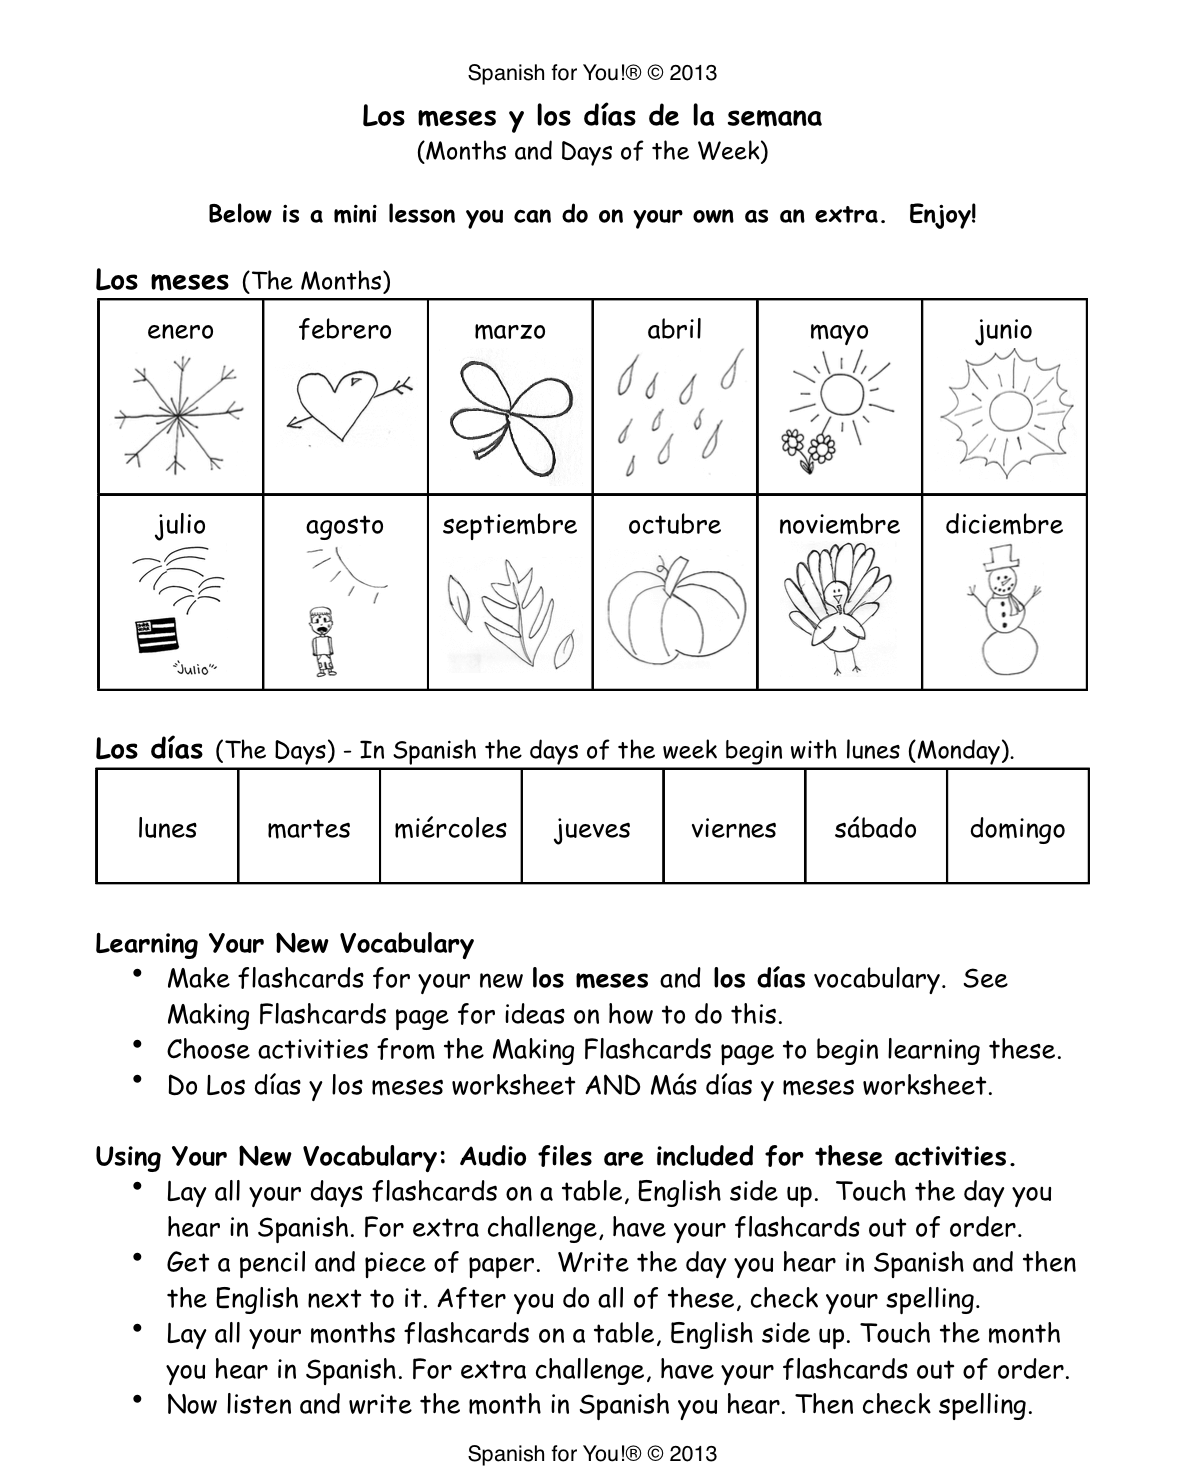 Spanish Days of the Week Worksheet - Free Printable Educational ...